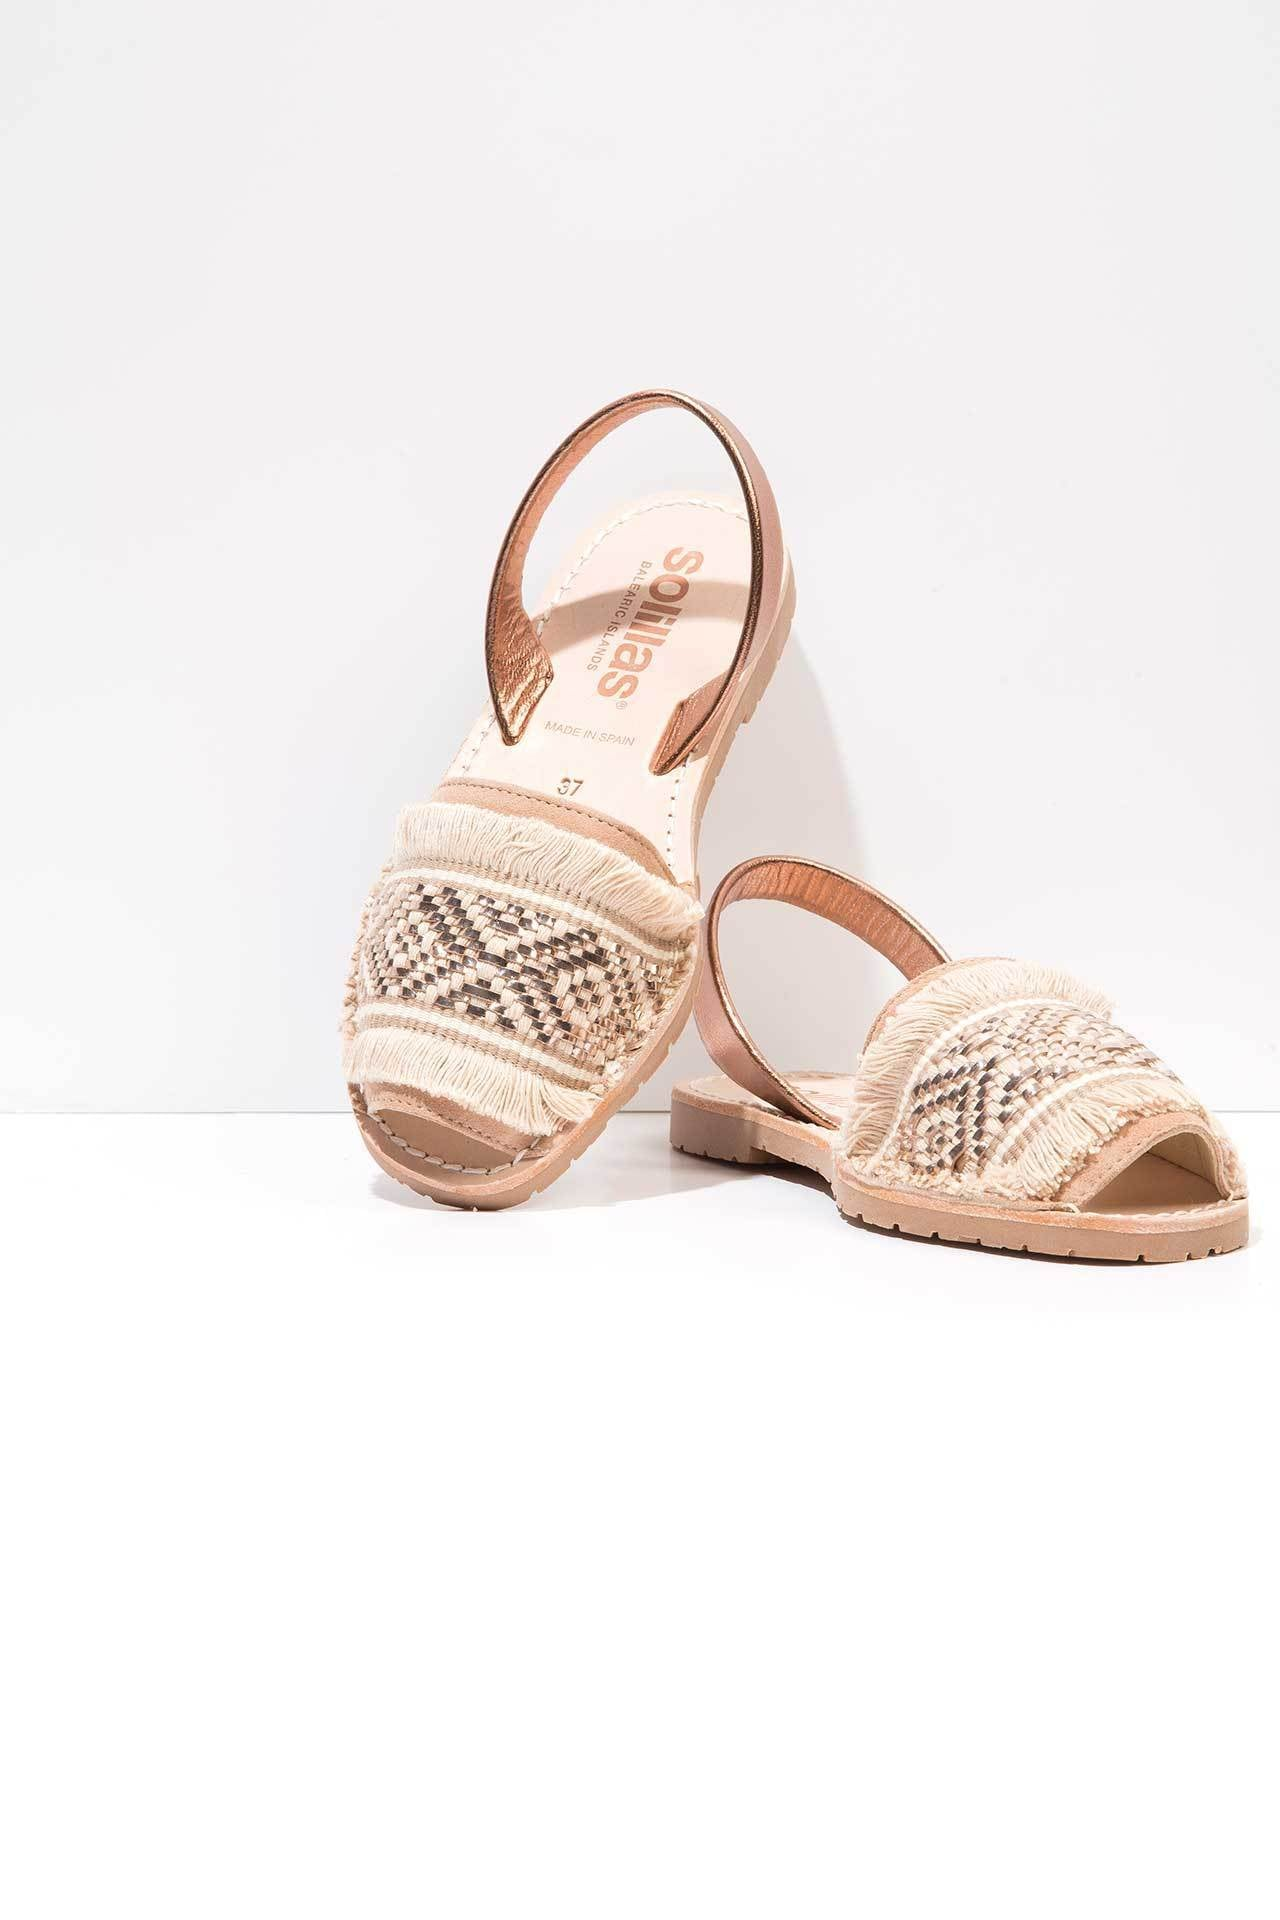 Rose Gold Leather Menorcan Sandals - Rose gold Solillas XcffLl6IOk